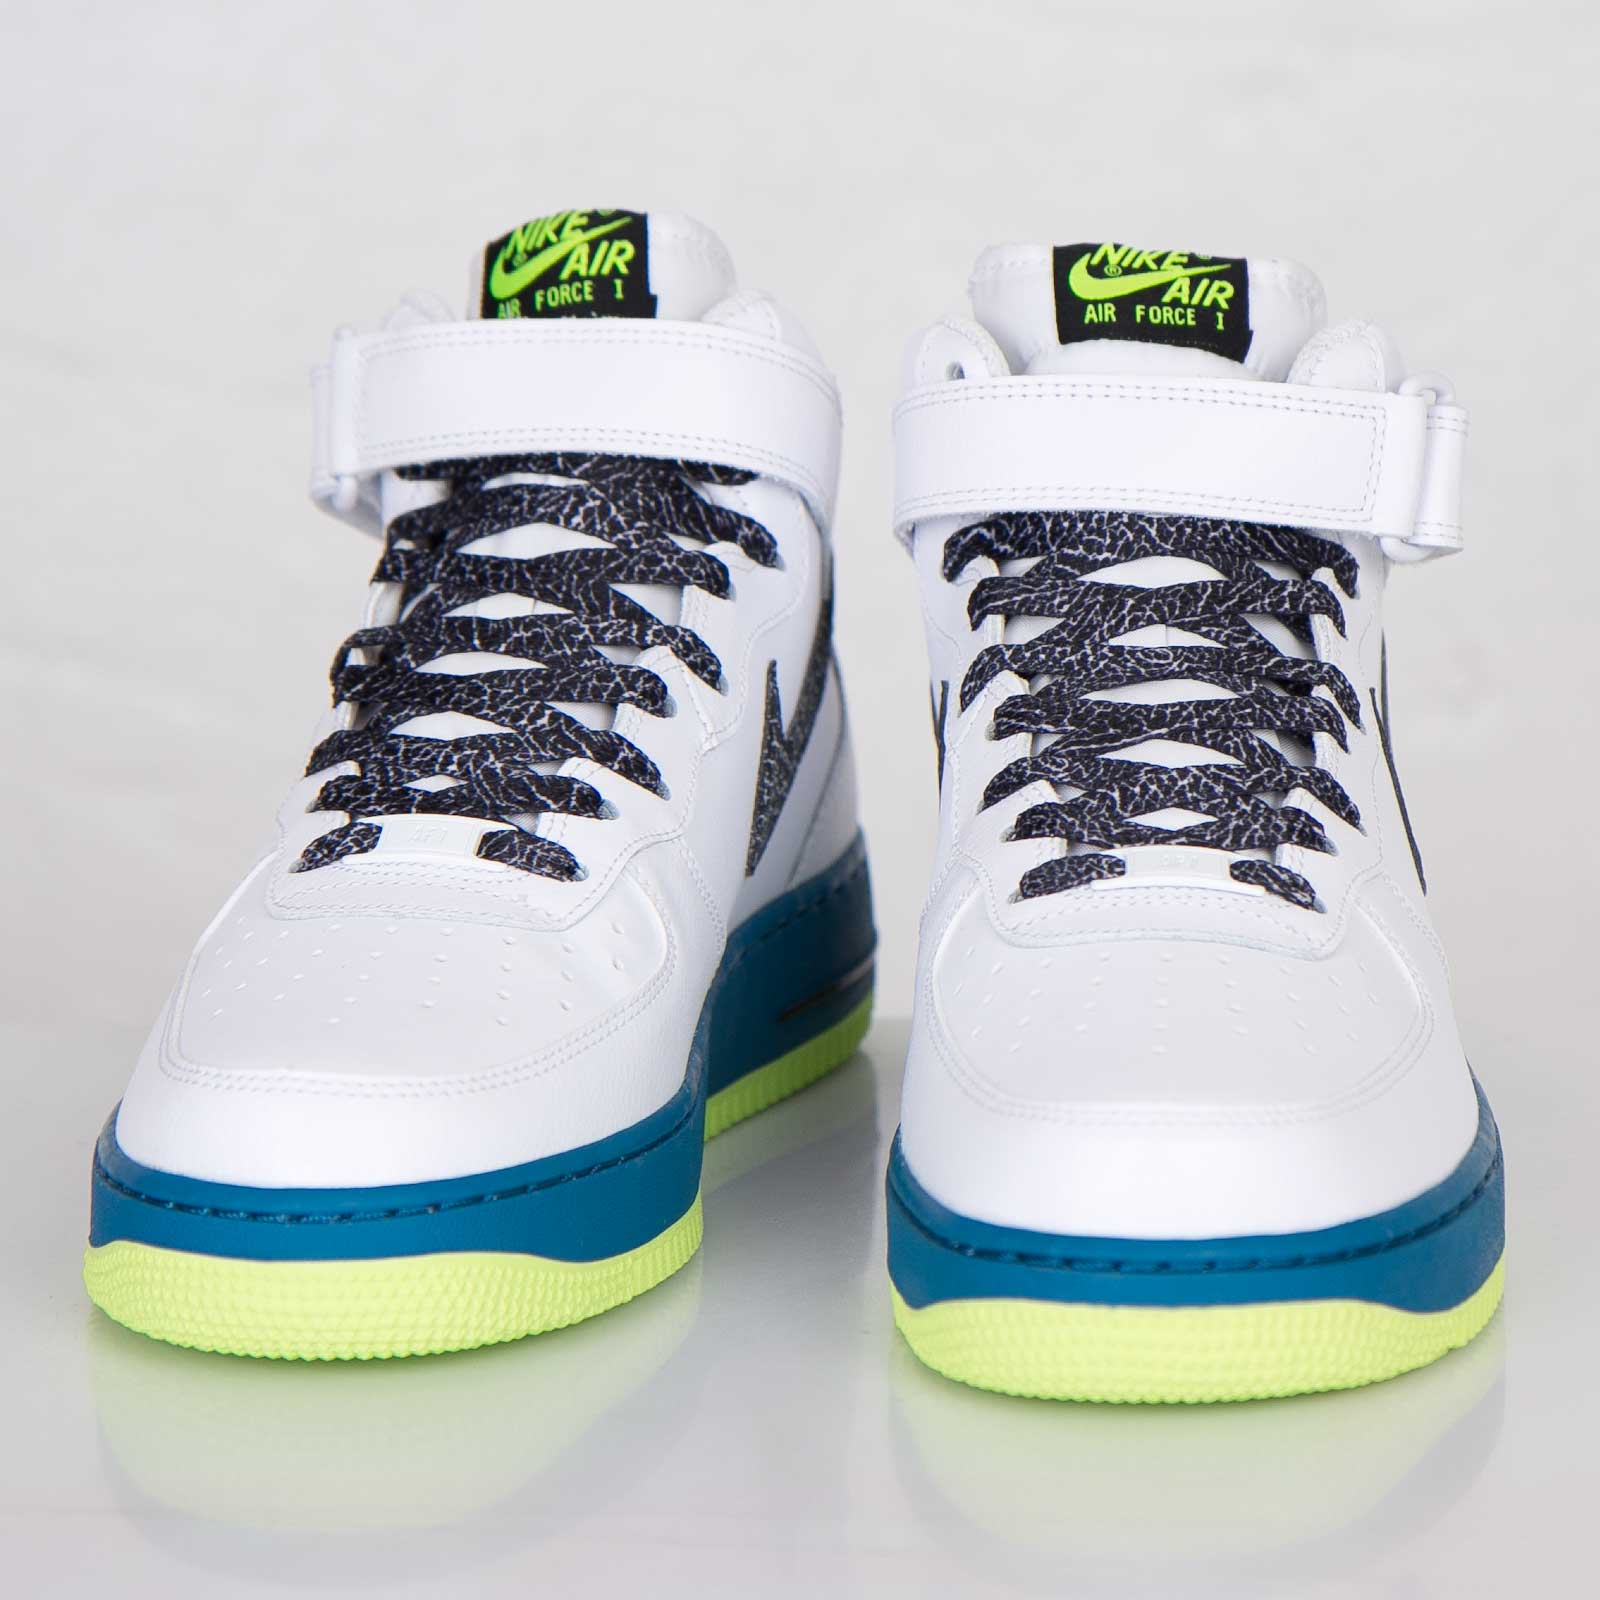 5a74fb80c57 Nike Hyperdunk 2012 Low Top Speed Nike Air Max Penny 1 For Sale Cheap